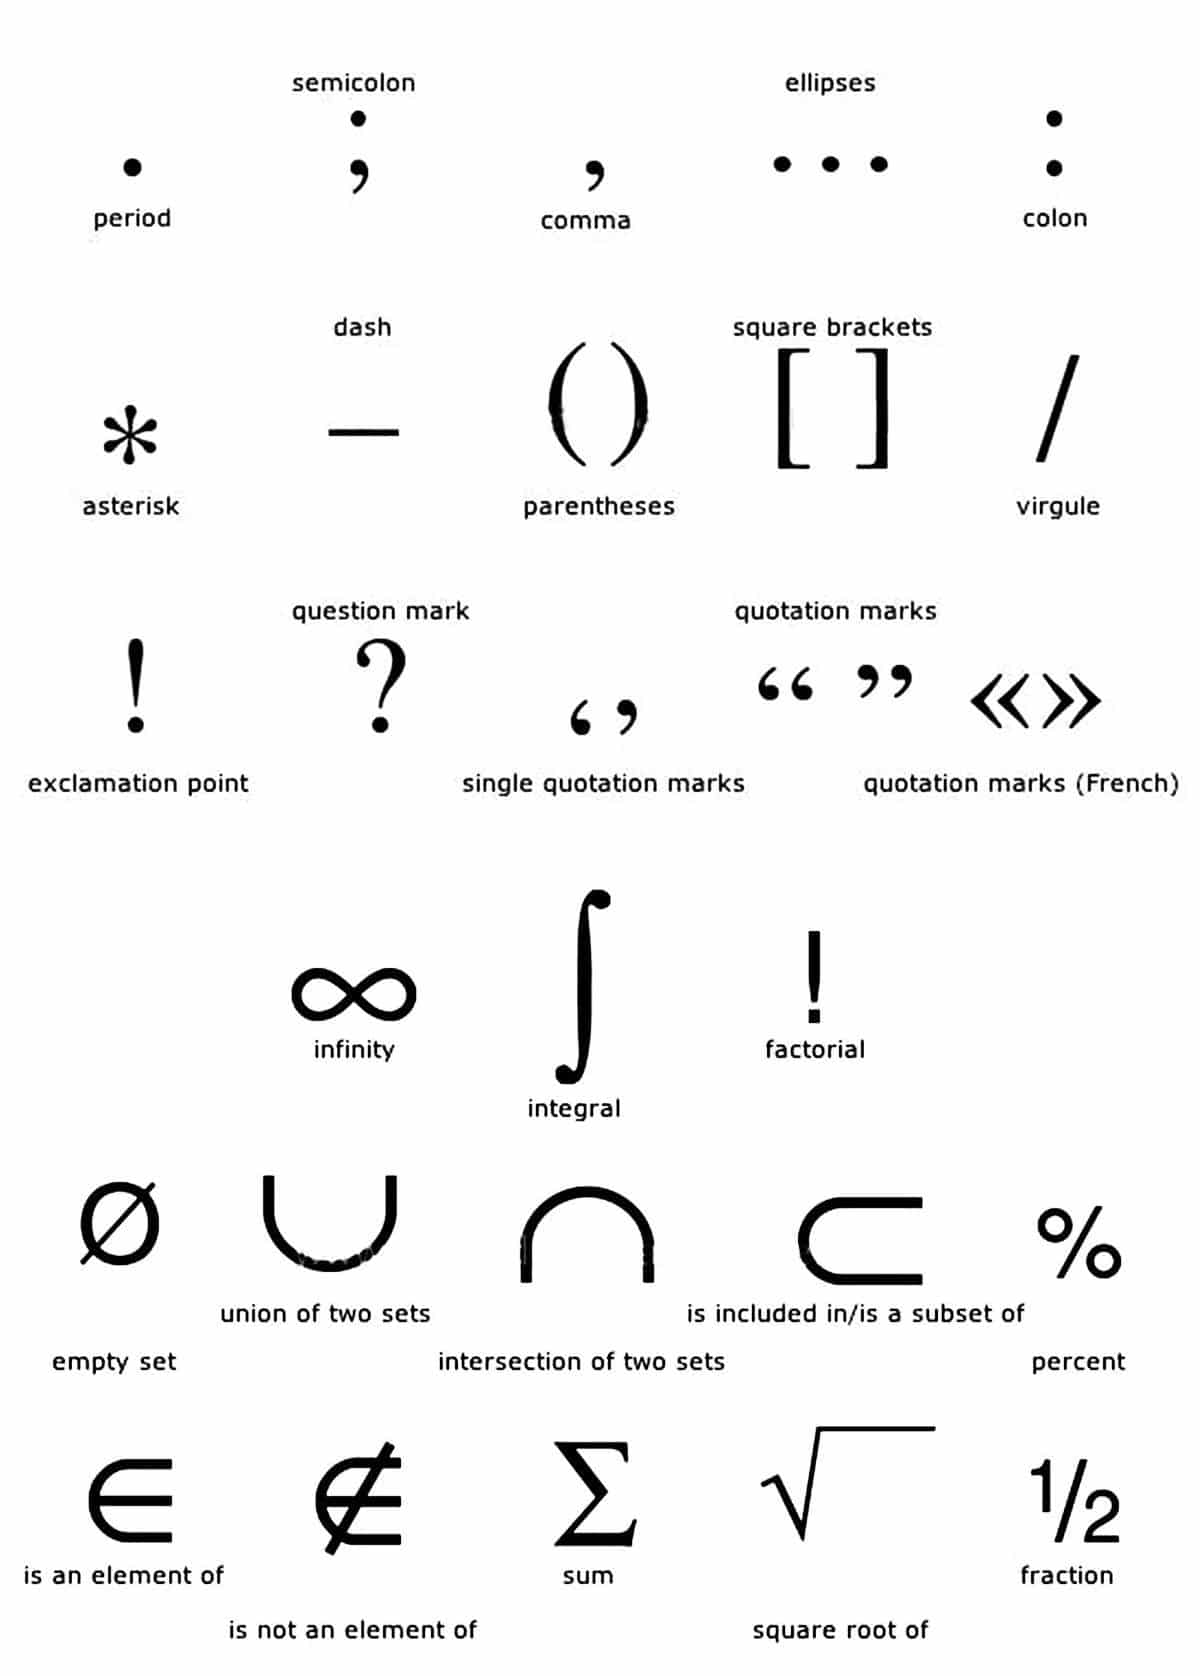 punctuation marks keyboard and math symbols in english esl buzz. Black Bedroom Furniture Sets. Home Design Ideas